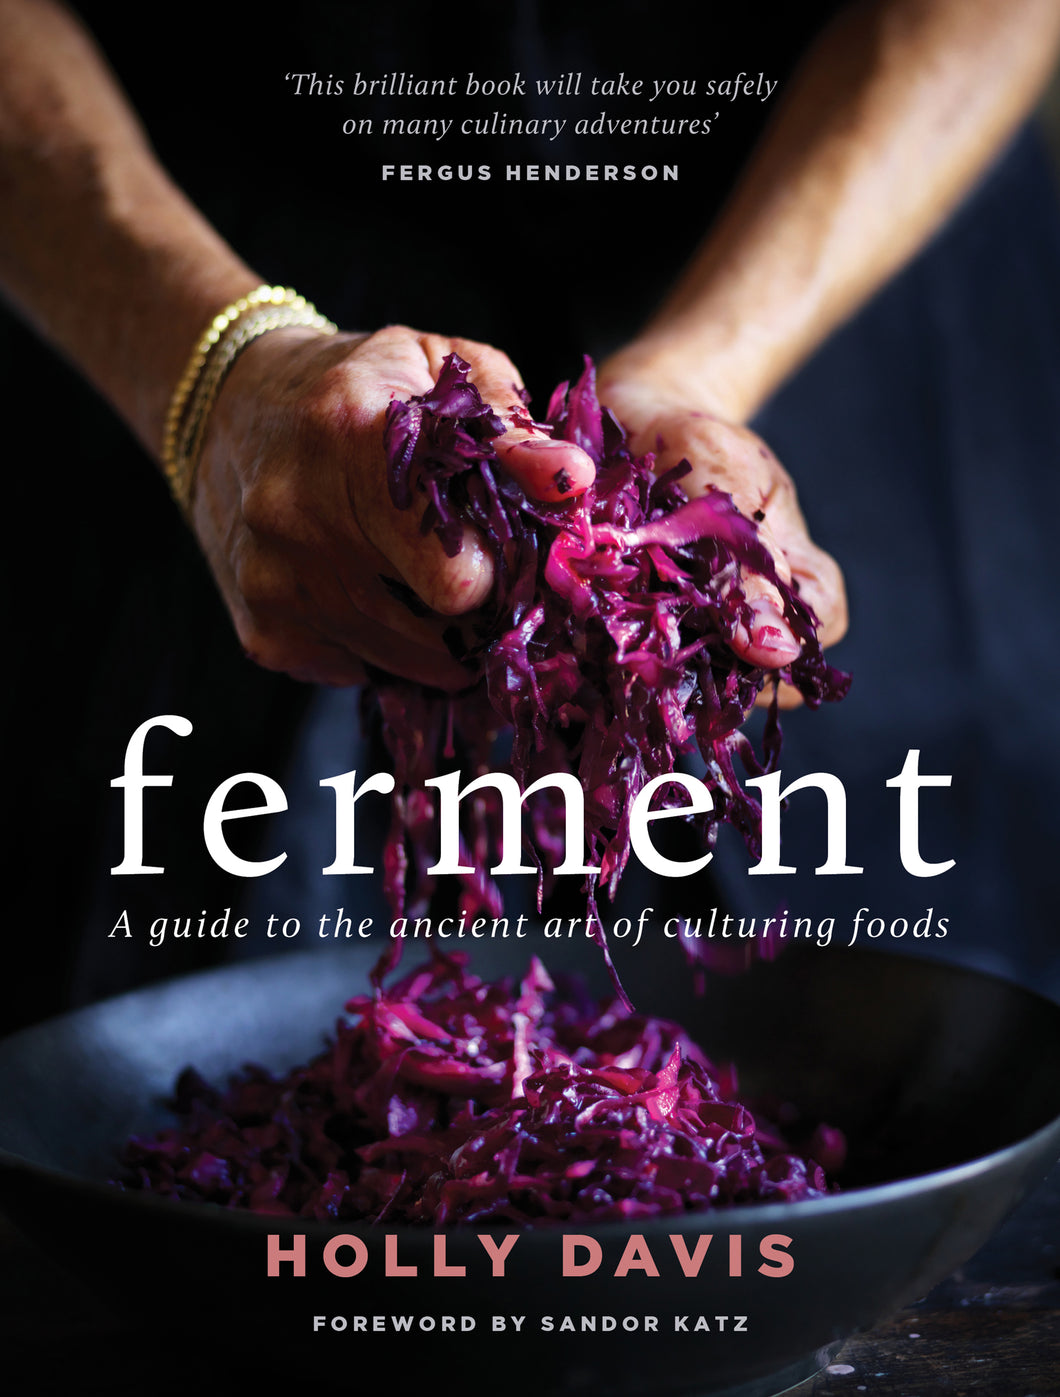 Ferment - A cookbook guide to fermentation